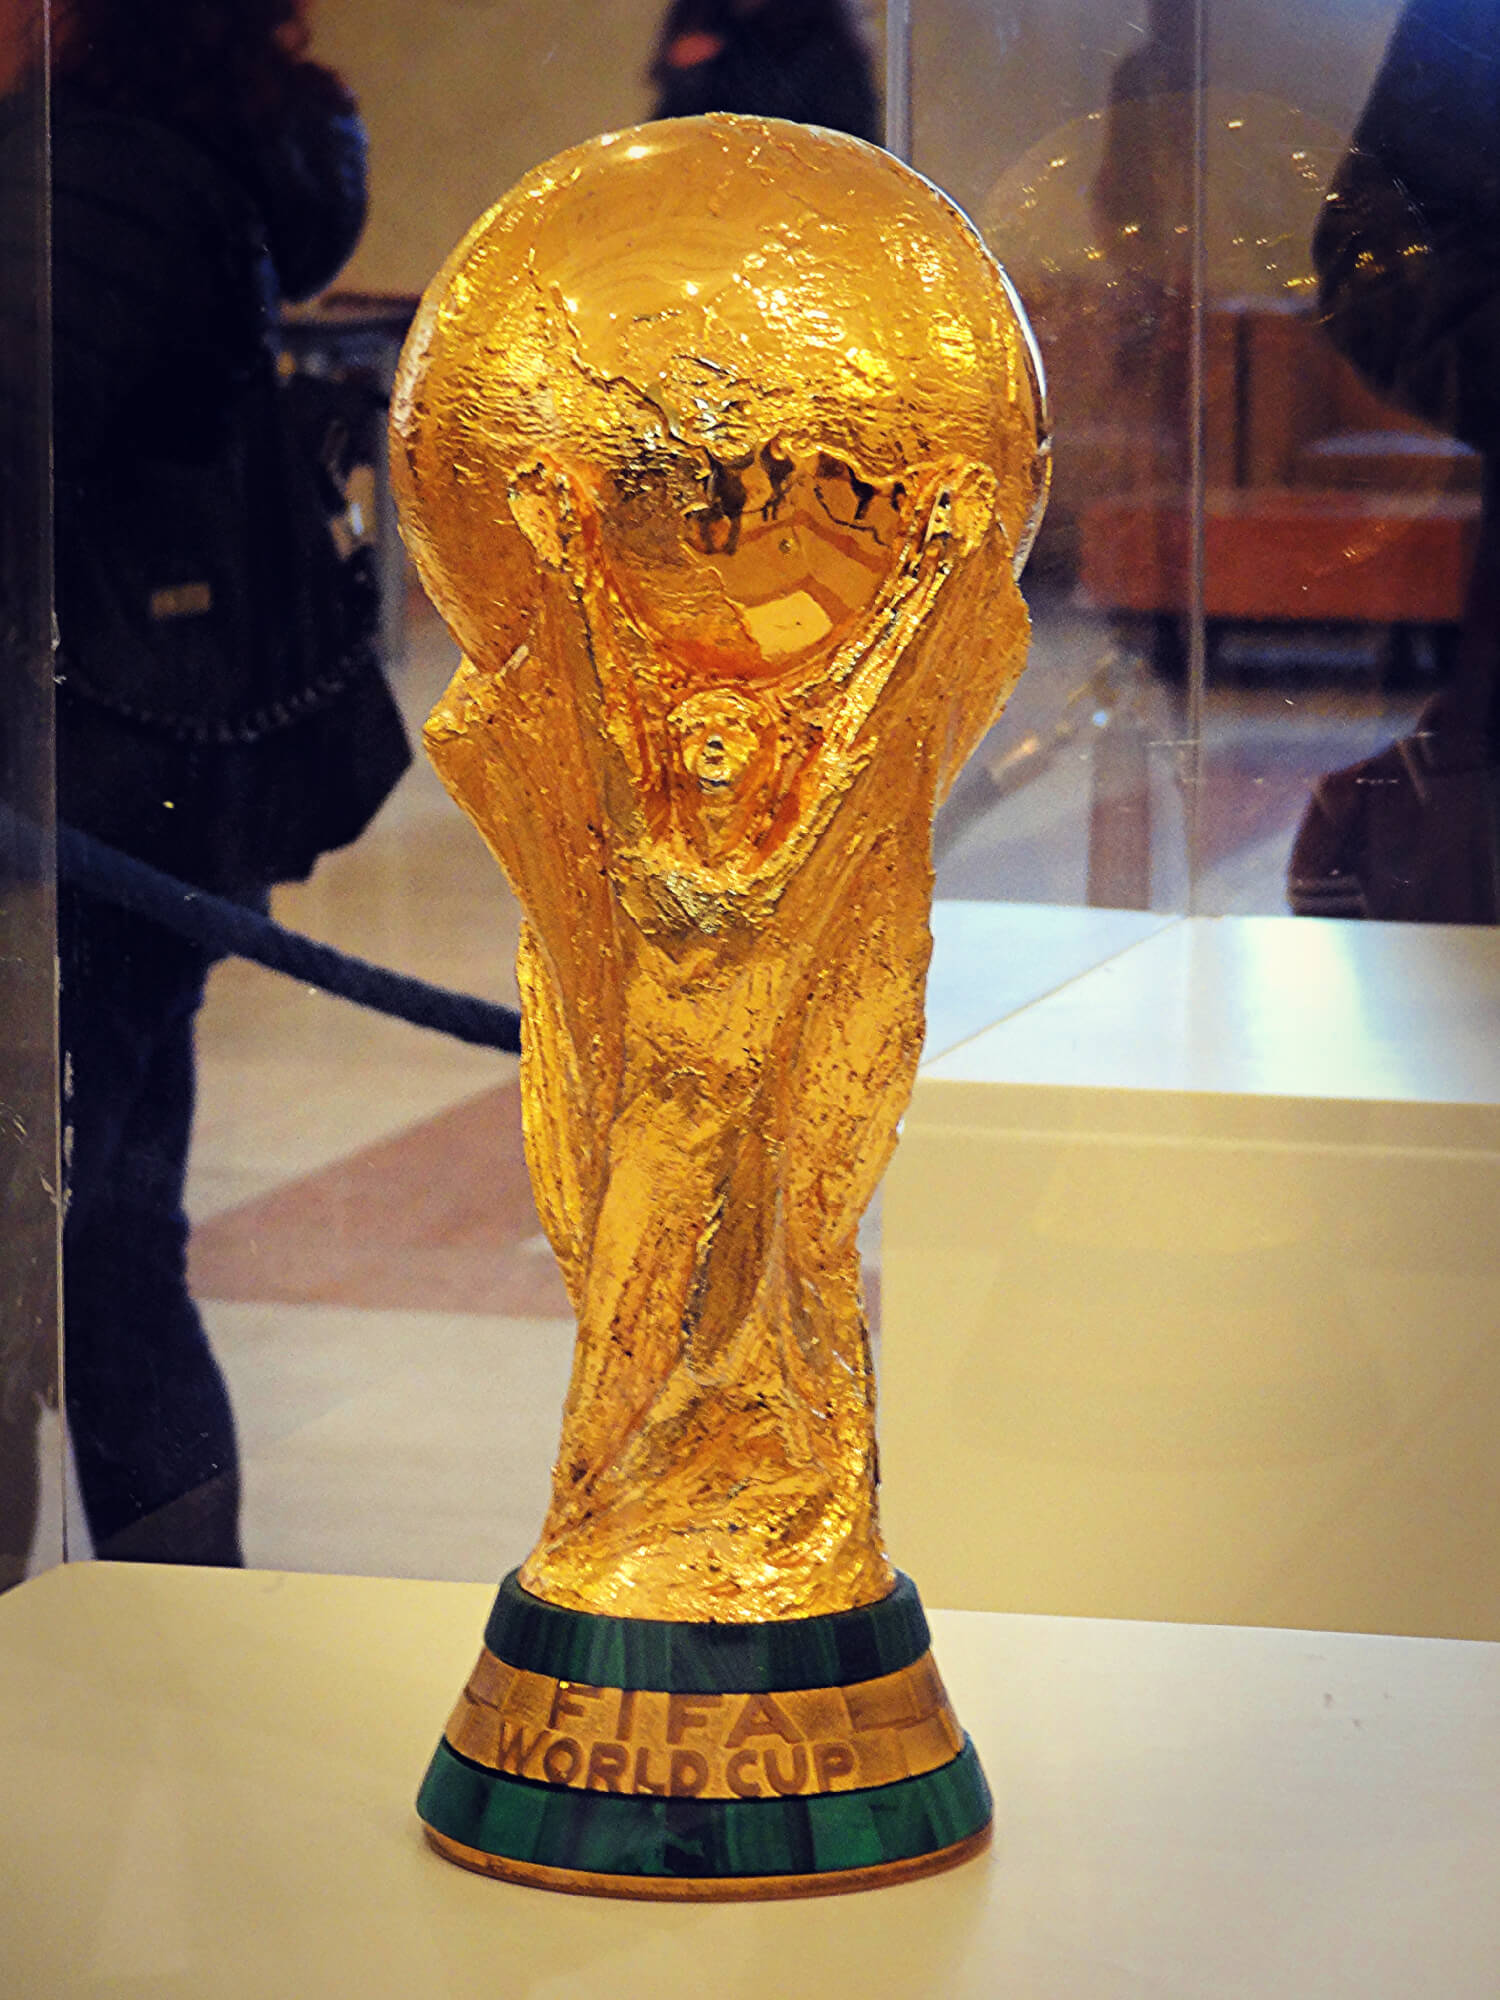 Visiting the Fifa World Cup Trophy might be one of your top things to do in Zürich!